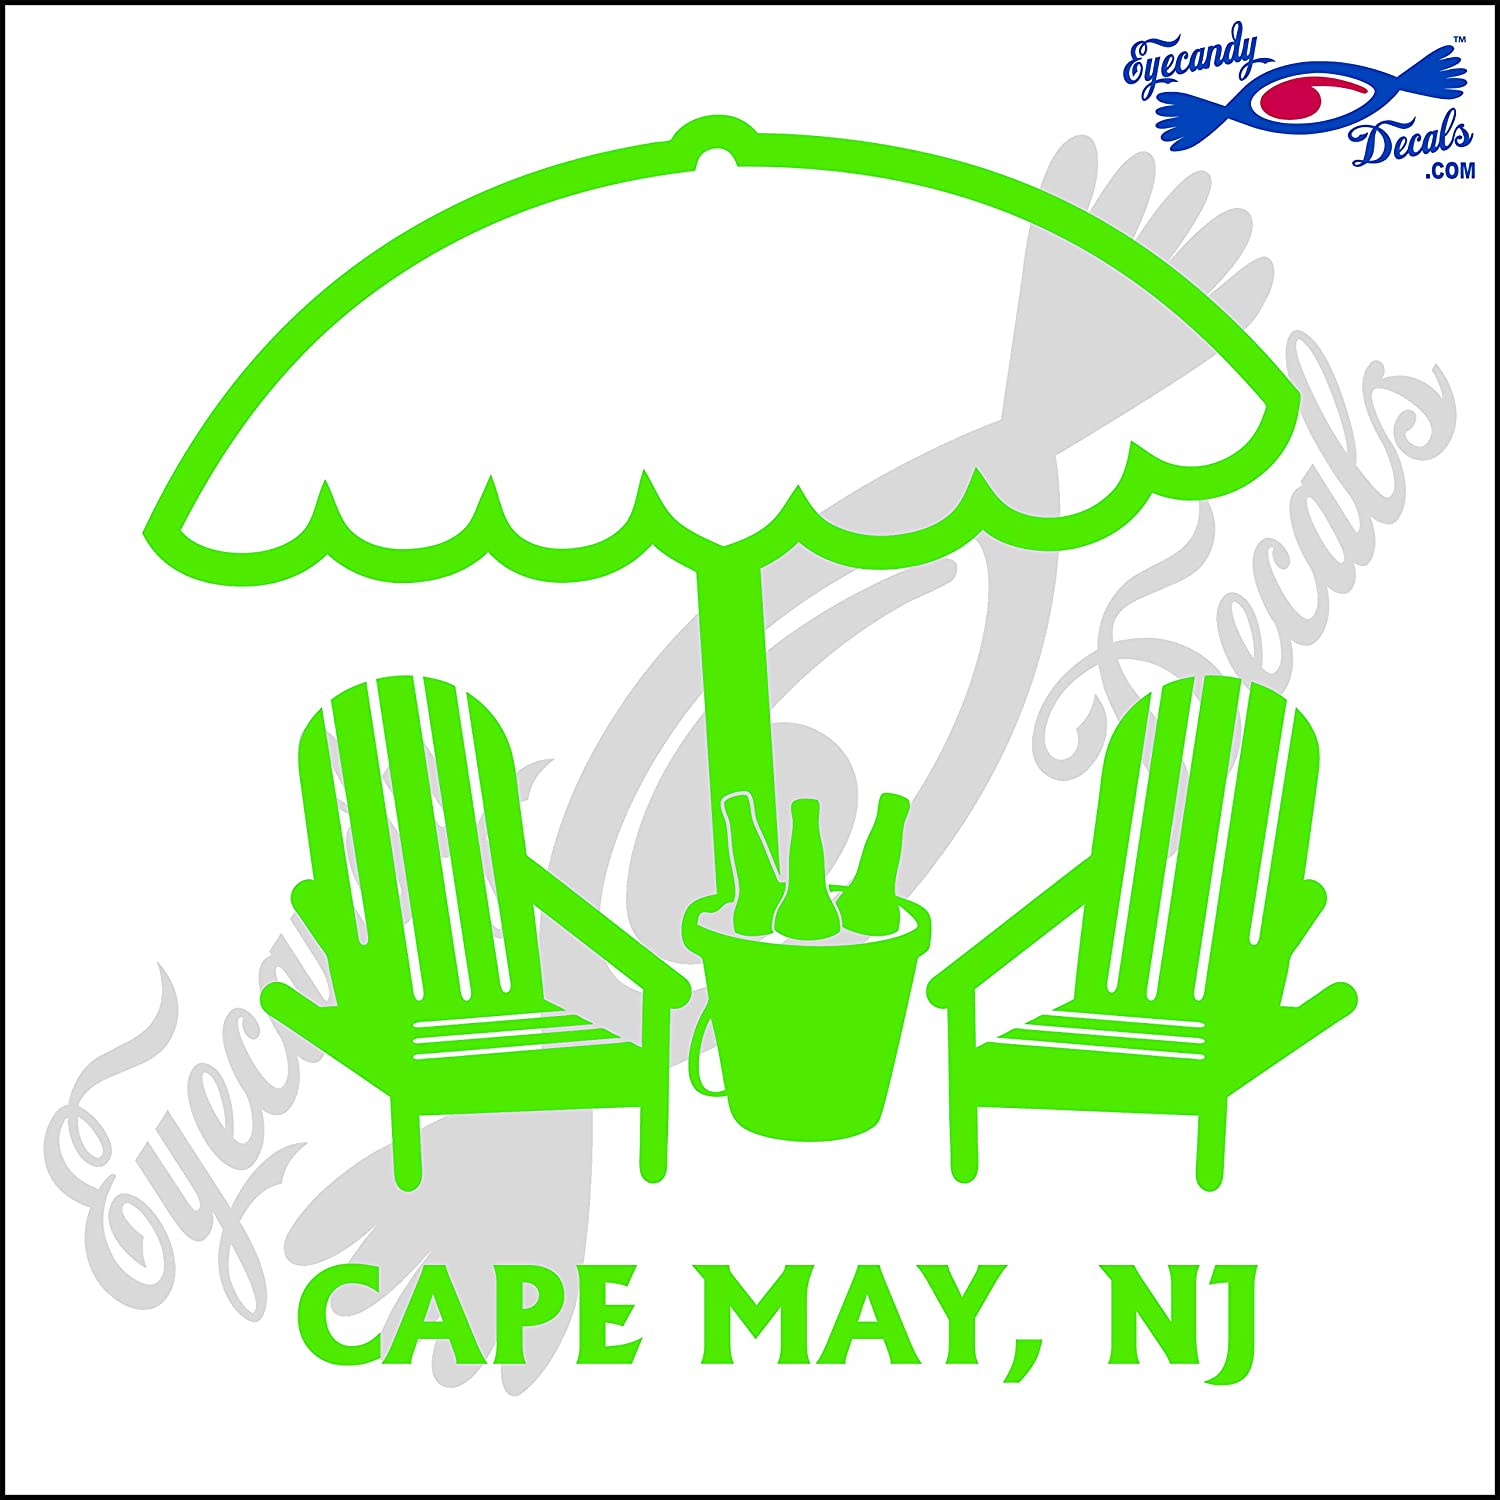 Eyecandy Decals Umbrella and Beer Pail with Cape May New Jersey 6 INCH Decal Lime Green